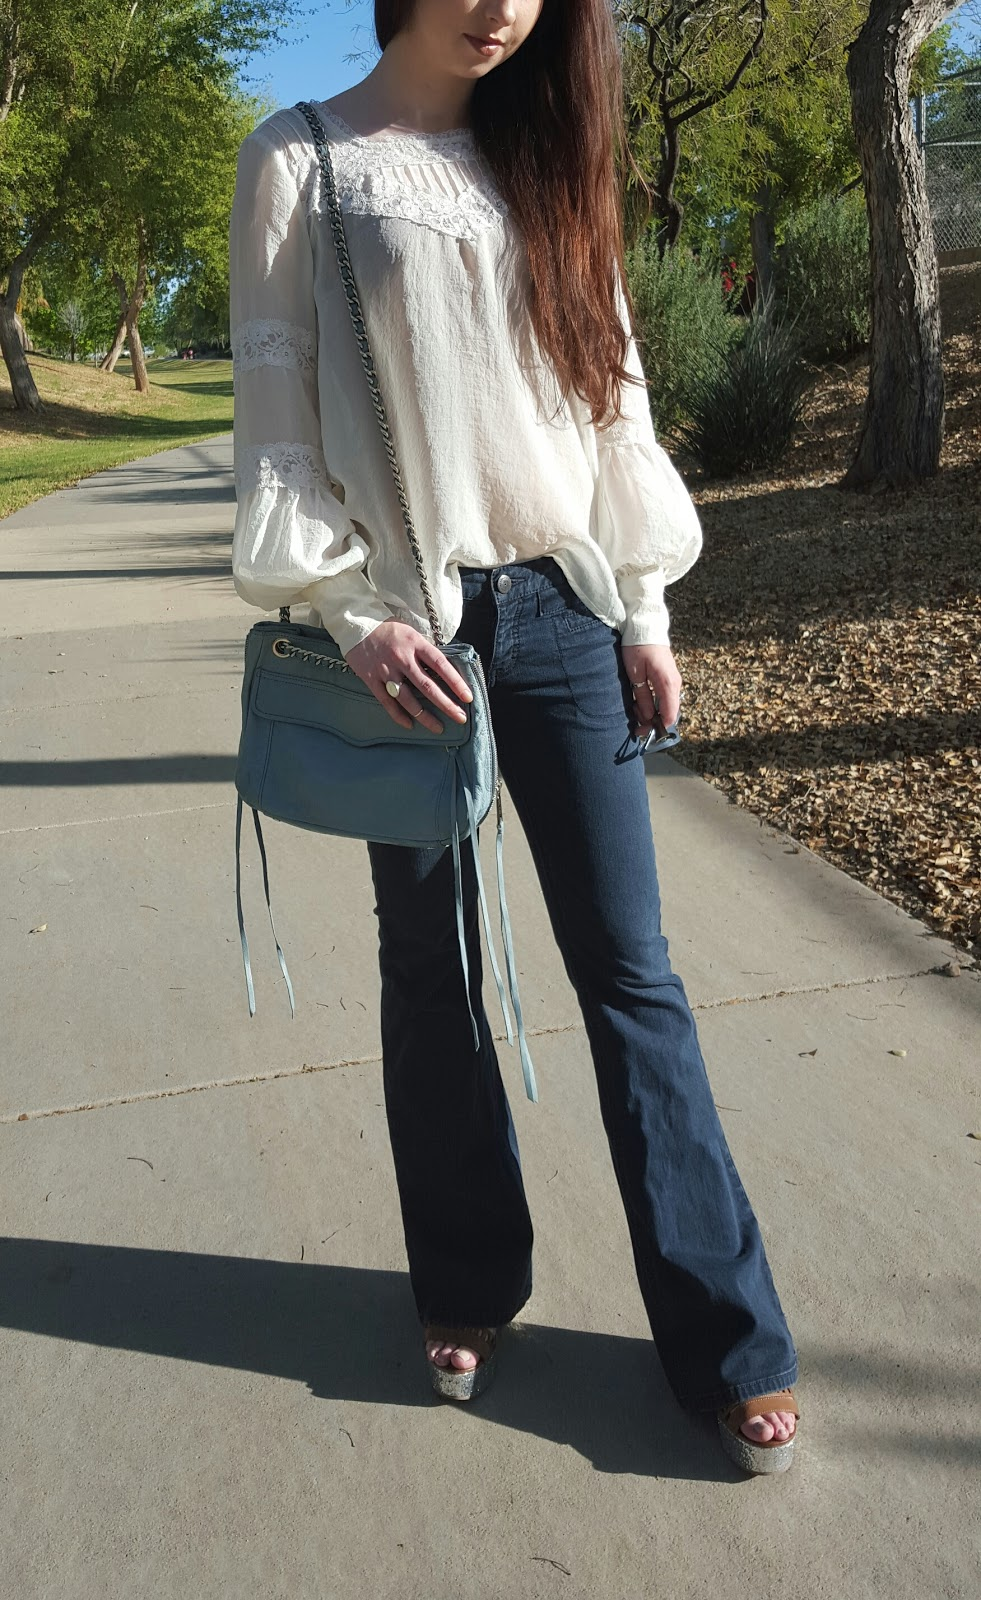 glam boho outfit for Spring with flare jeans and flowy top